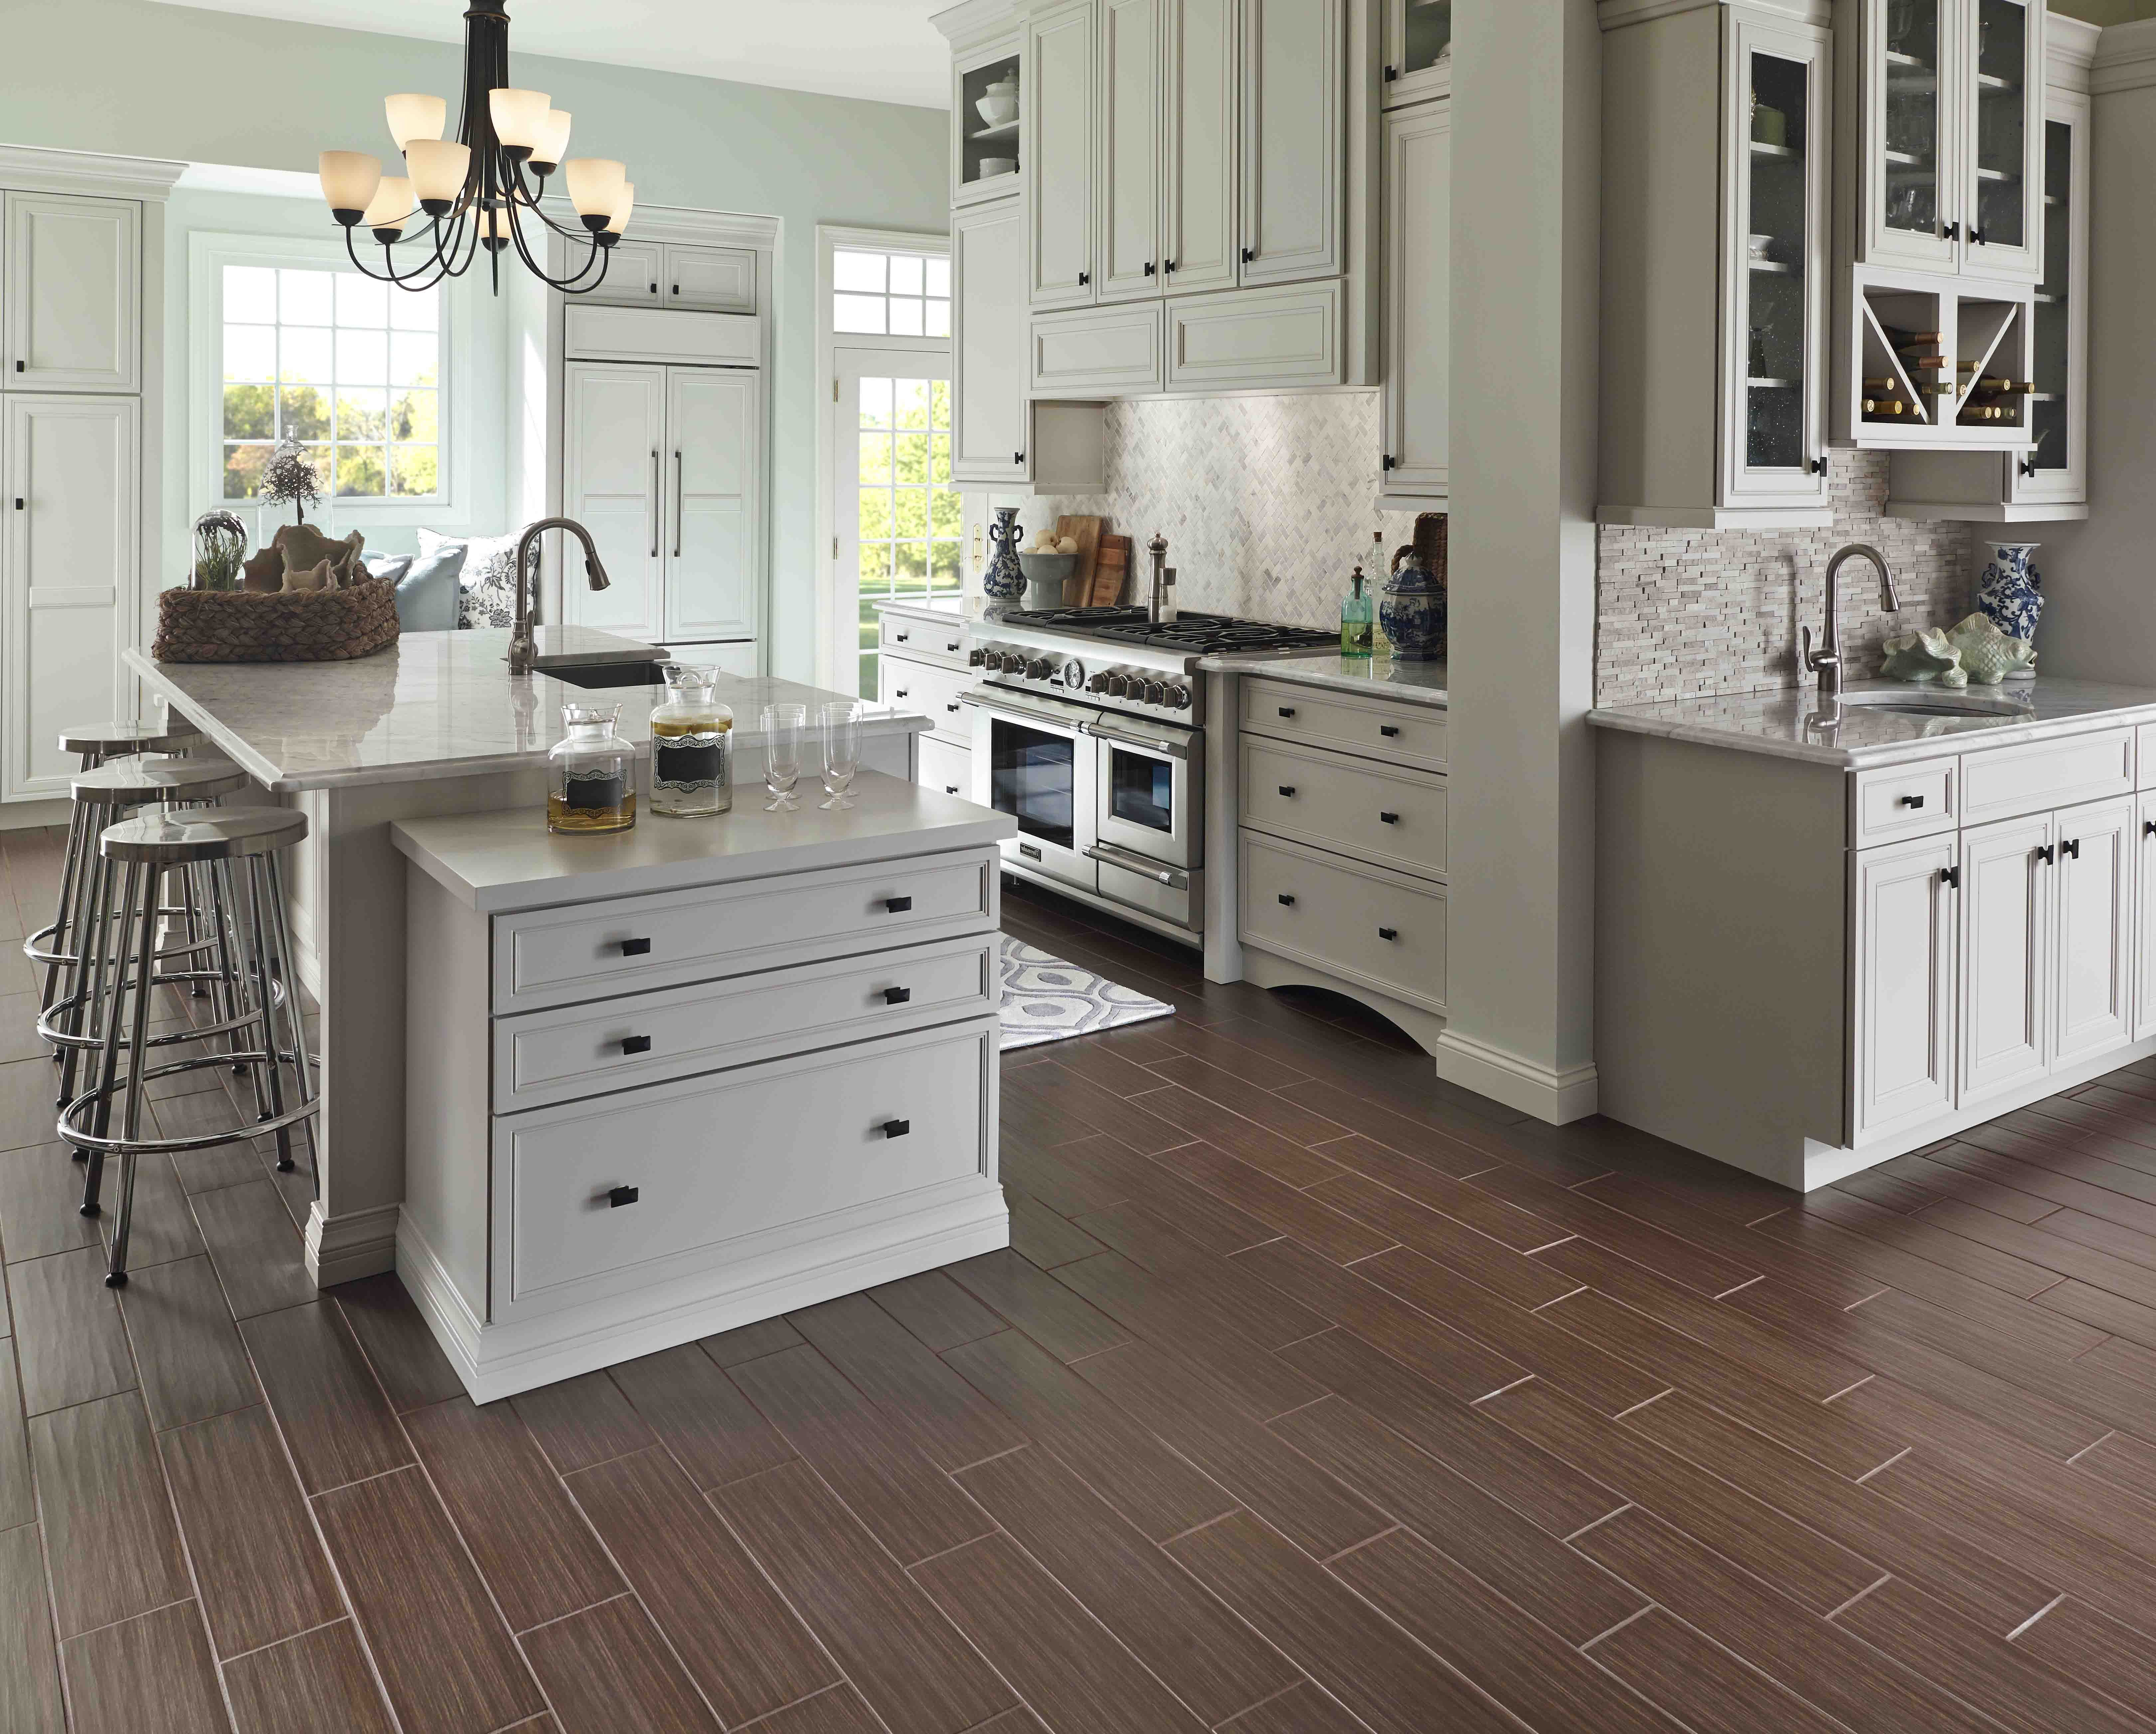 marmoleum used to recreate different flooring tren kitchen flooring trends Hot Kitchen Trends Part Cabinets Countertops